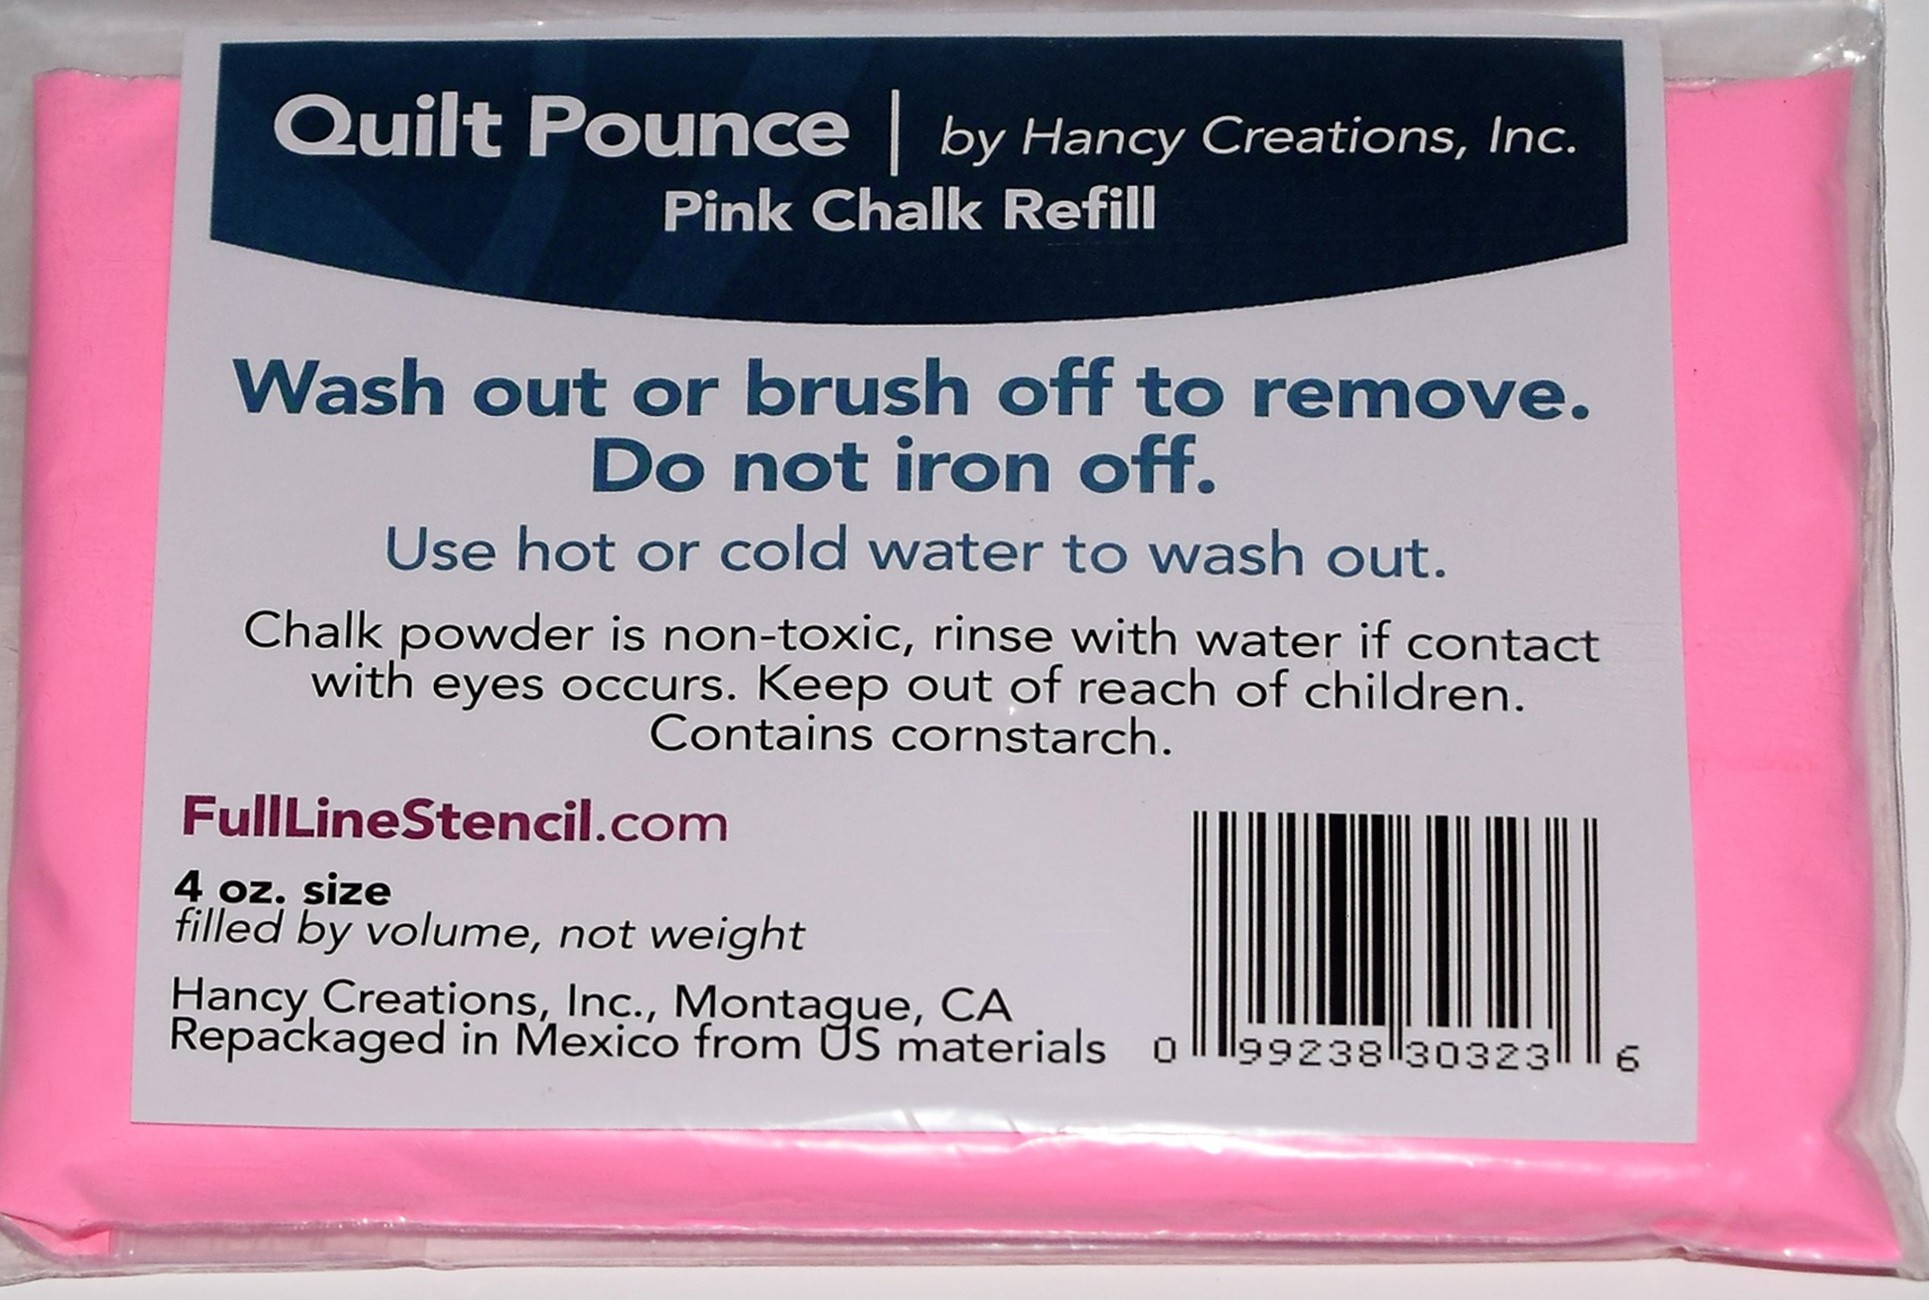 Hancy Creations QPU Ultimate Quilt Pounce Pad Iron-Off Chalk Powder White Full Line Stencils